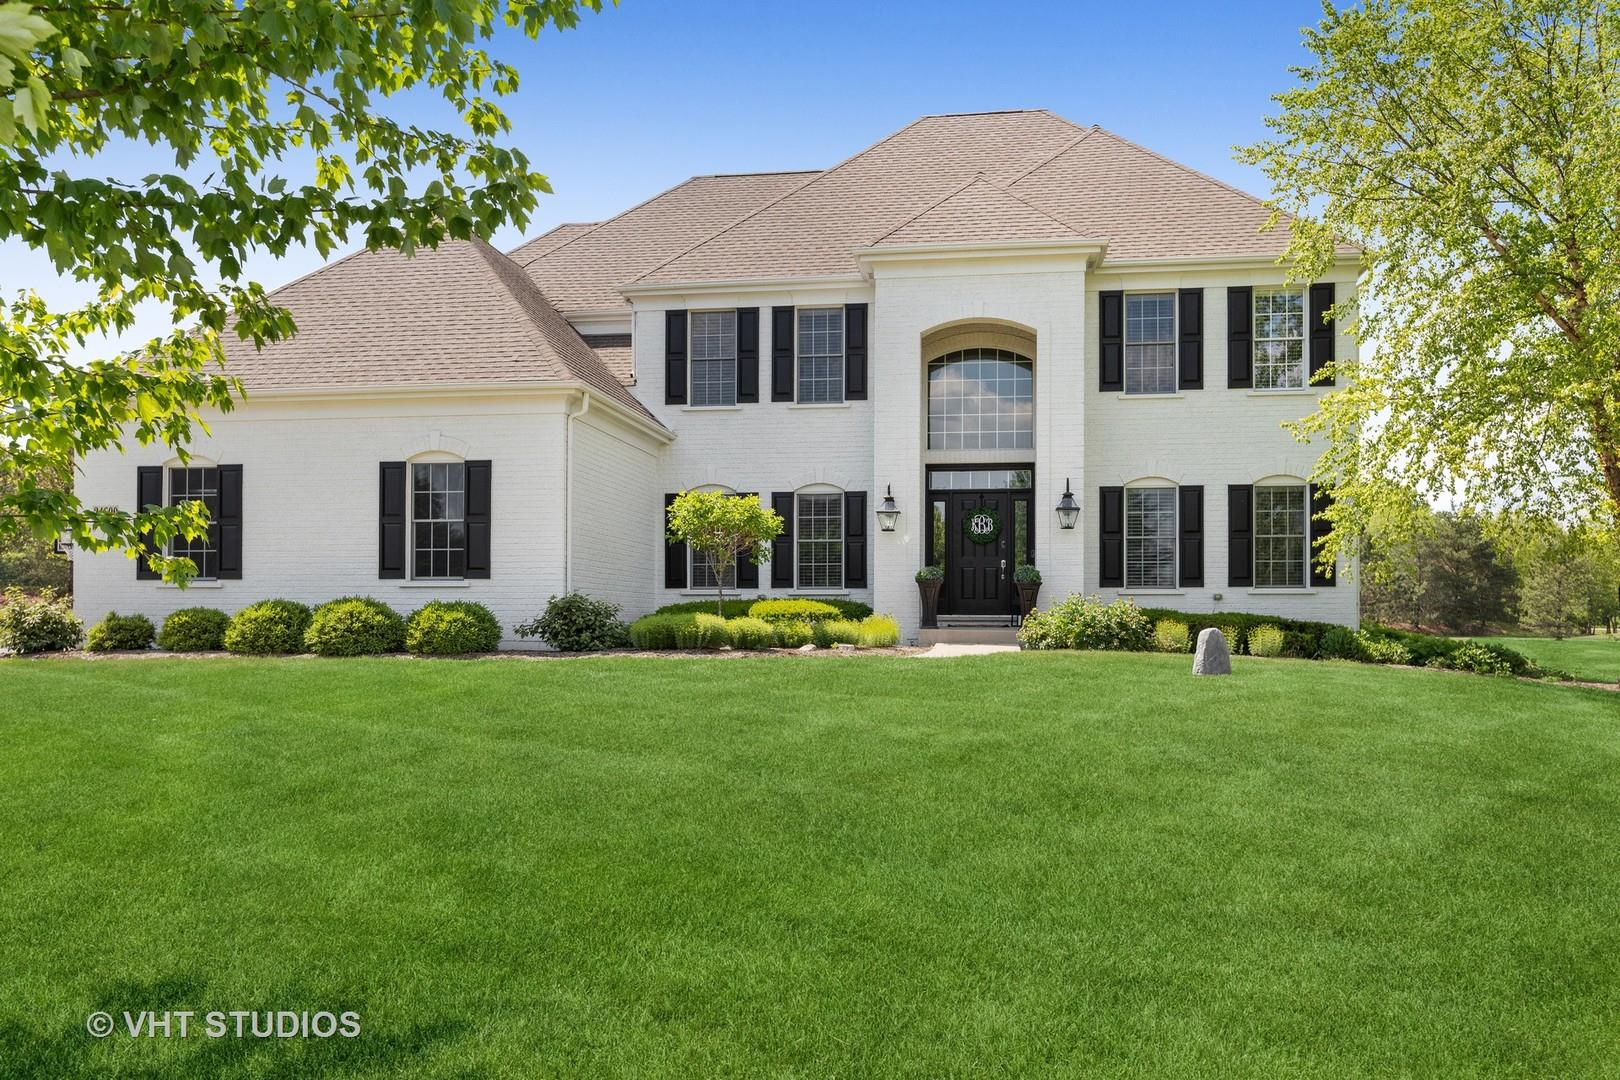 24600 N Whispering Wheat Lane, Cary, IL 60013 - #: 11109246